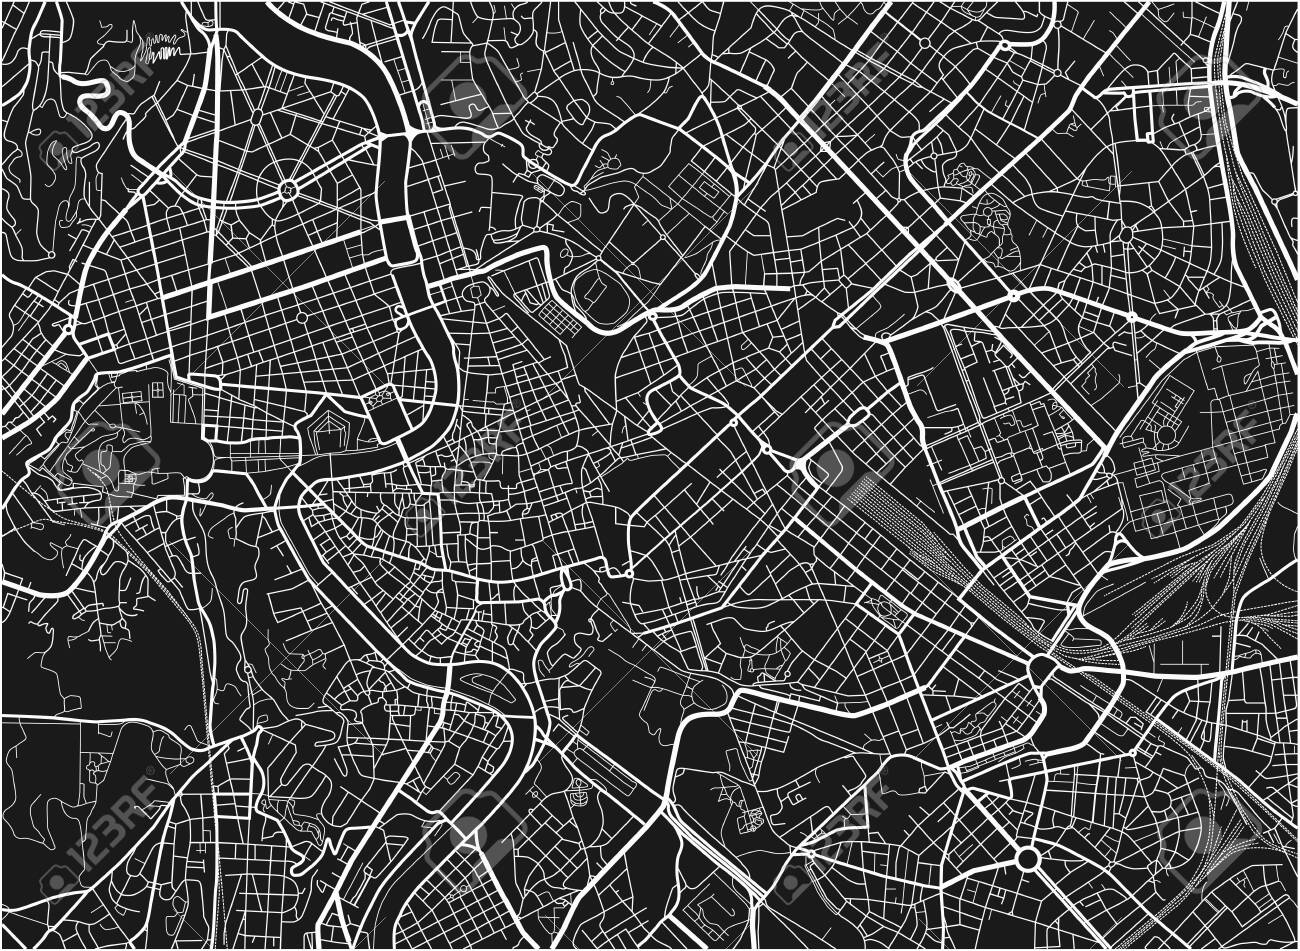 Black and white vector city map of Rome with well organized separated layers. - 122656850